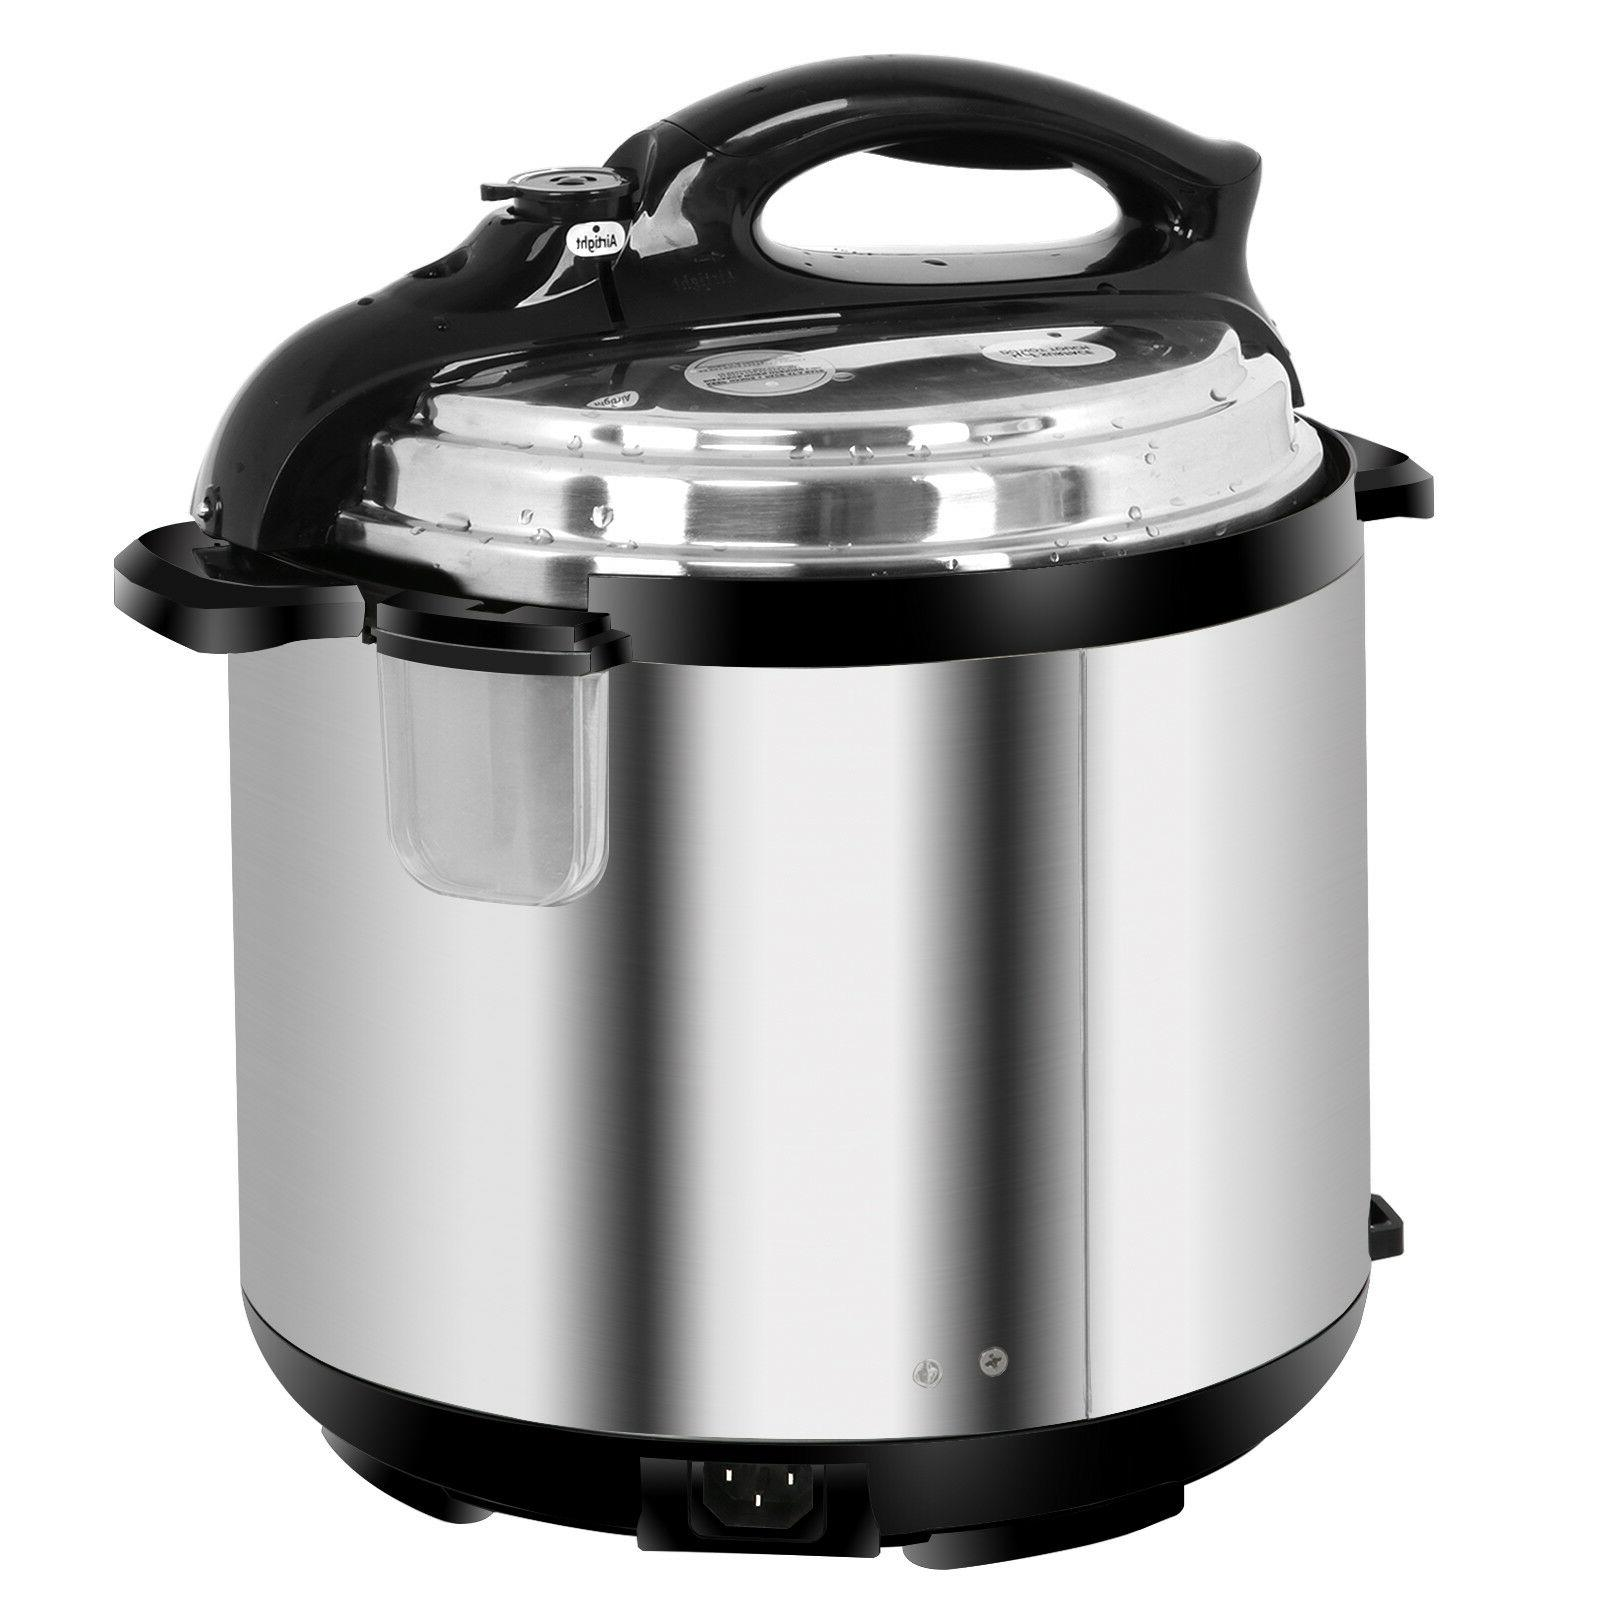 6.3Qt 7-in-1 Multi-Use Programmable Pressure Cooker Slow Coo